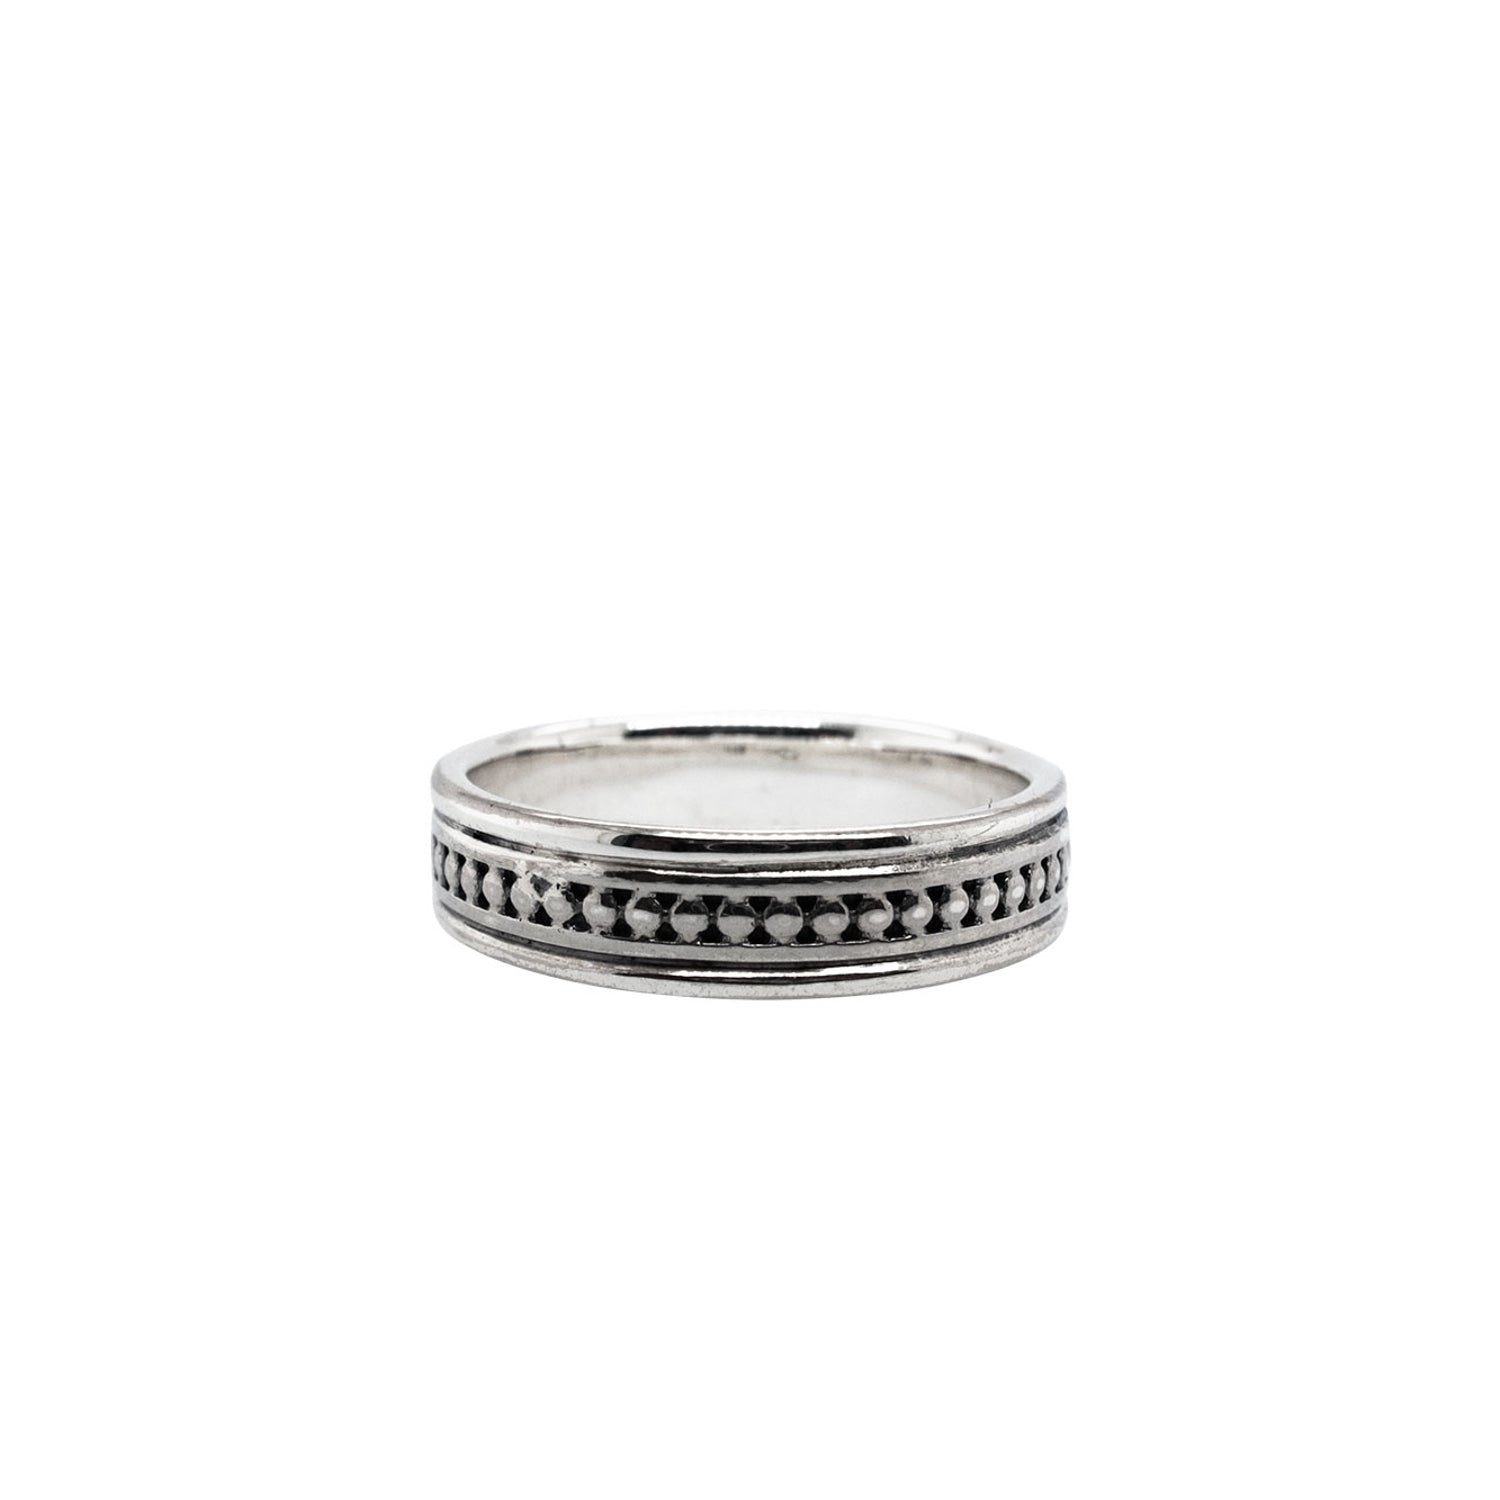 Ring Bands Beaded Ring with Plain Rails from welch and company jewelers near syracuse ny